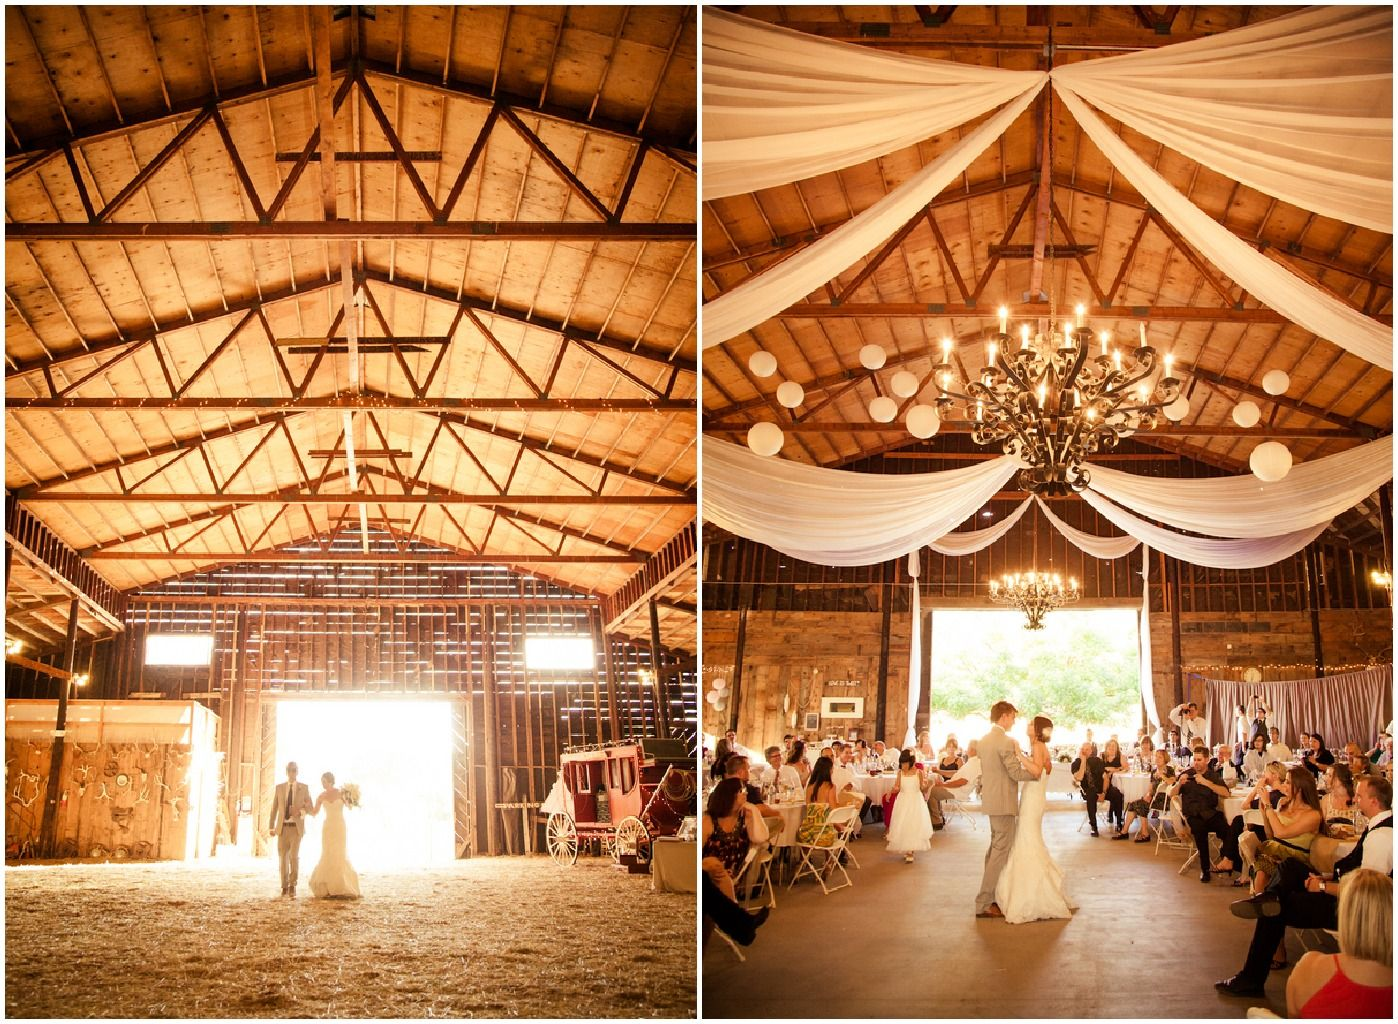 Northern California Barn Wedding Rustic Chic